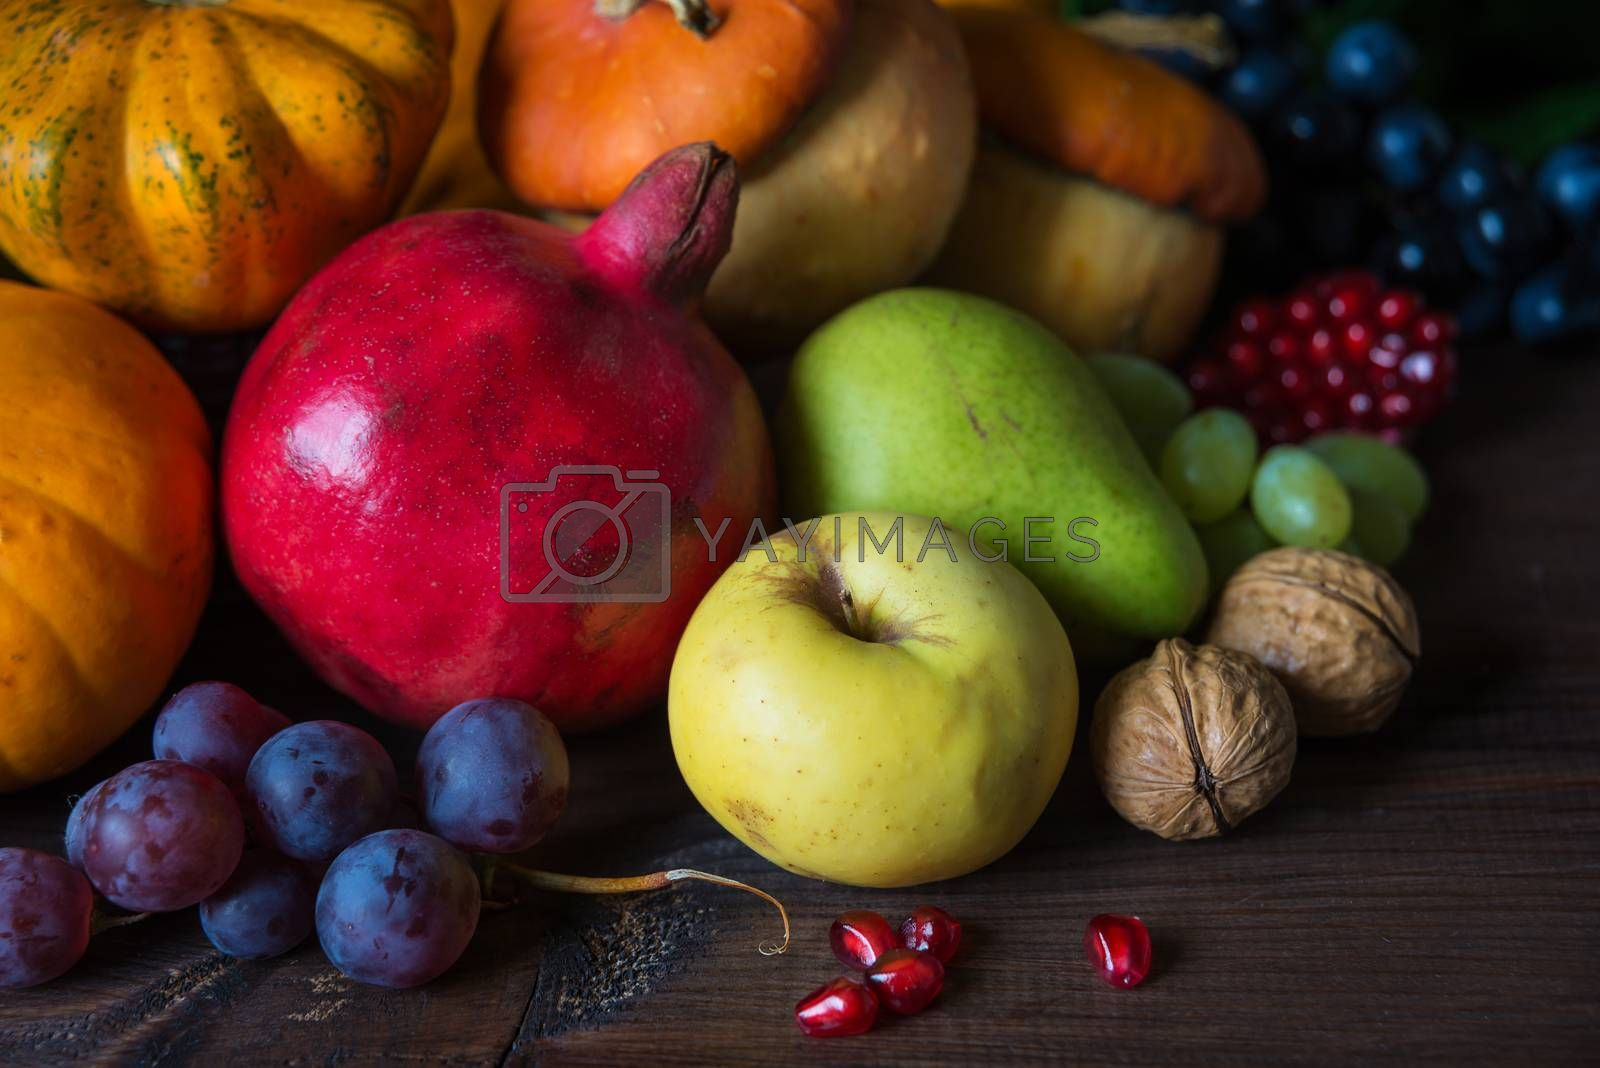 Rich harvest of various fruits and vegetables: decorative pumpkins, squash, apples, pears, pomegranates and grapes on the dark wooden background